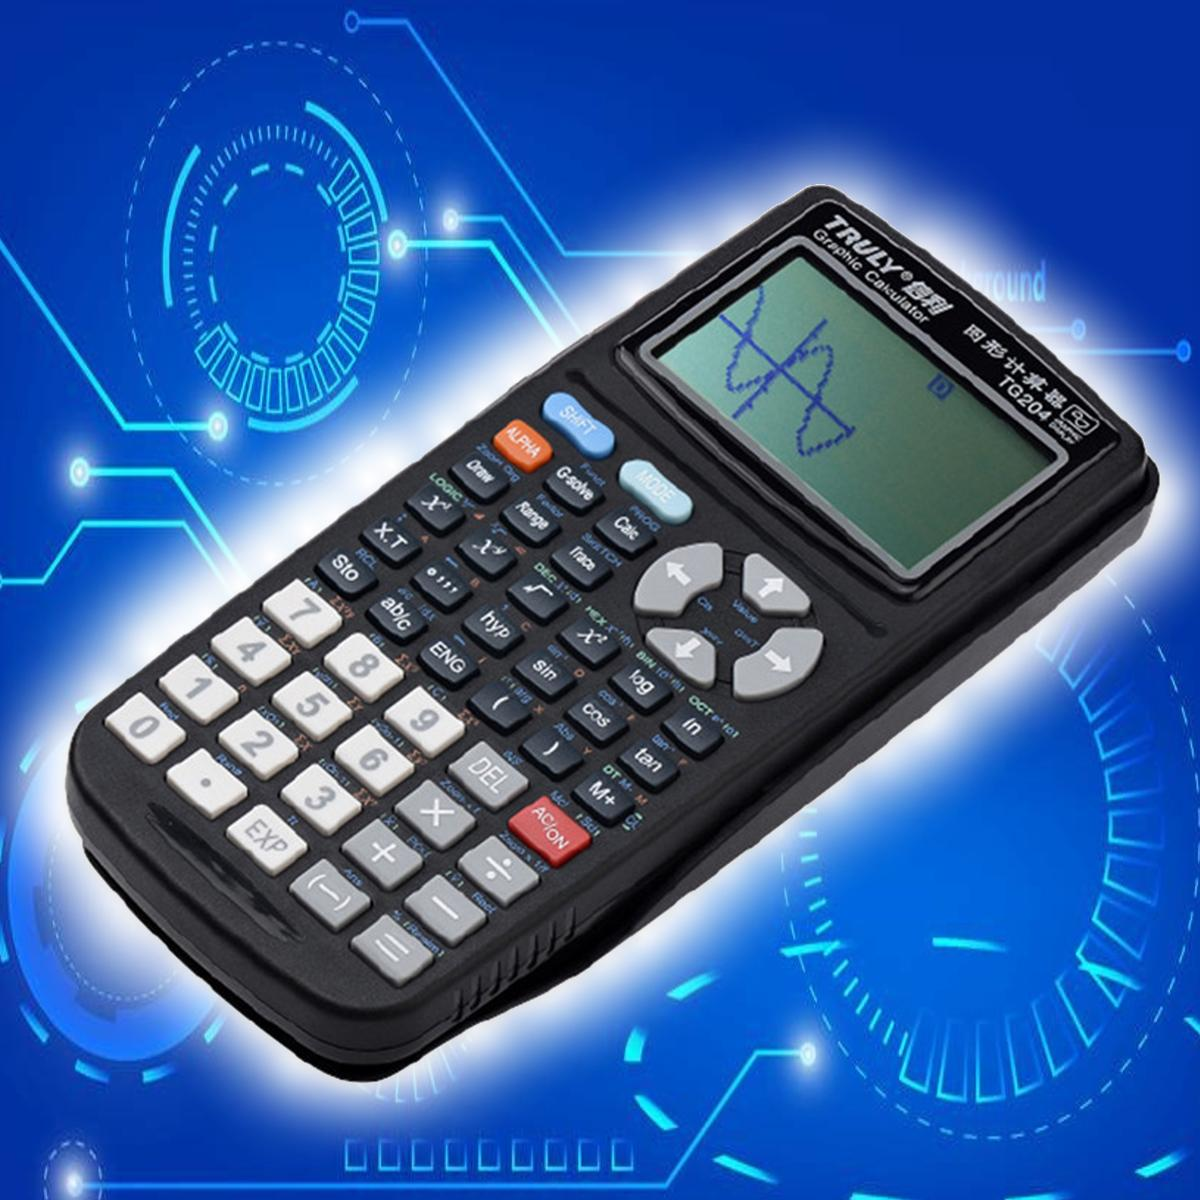 The Old Tree Scientific Graphing Graphic Calculator SAT Exam MATH SCHOOL  GRAPHING Function